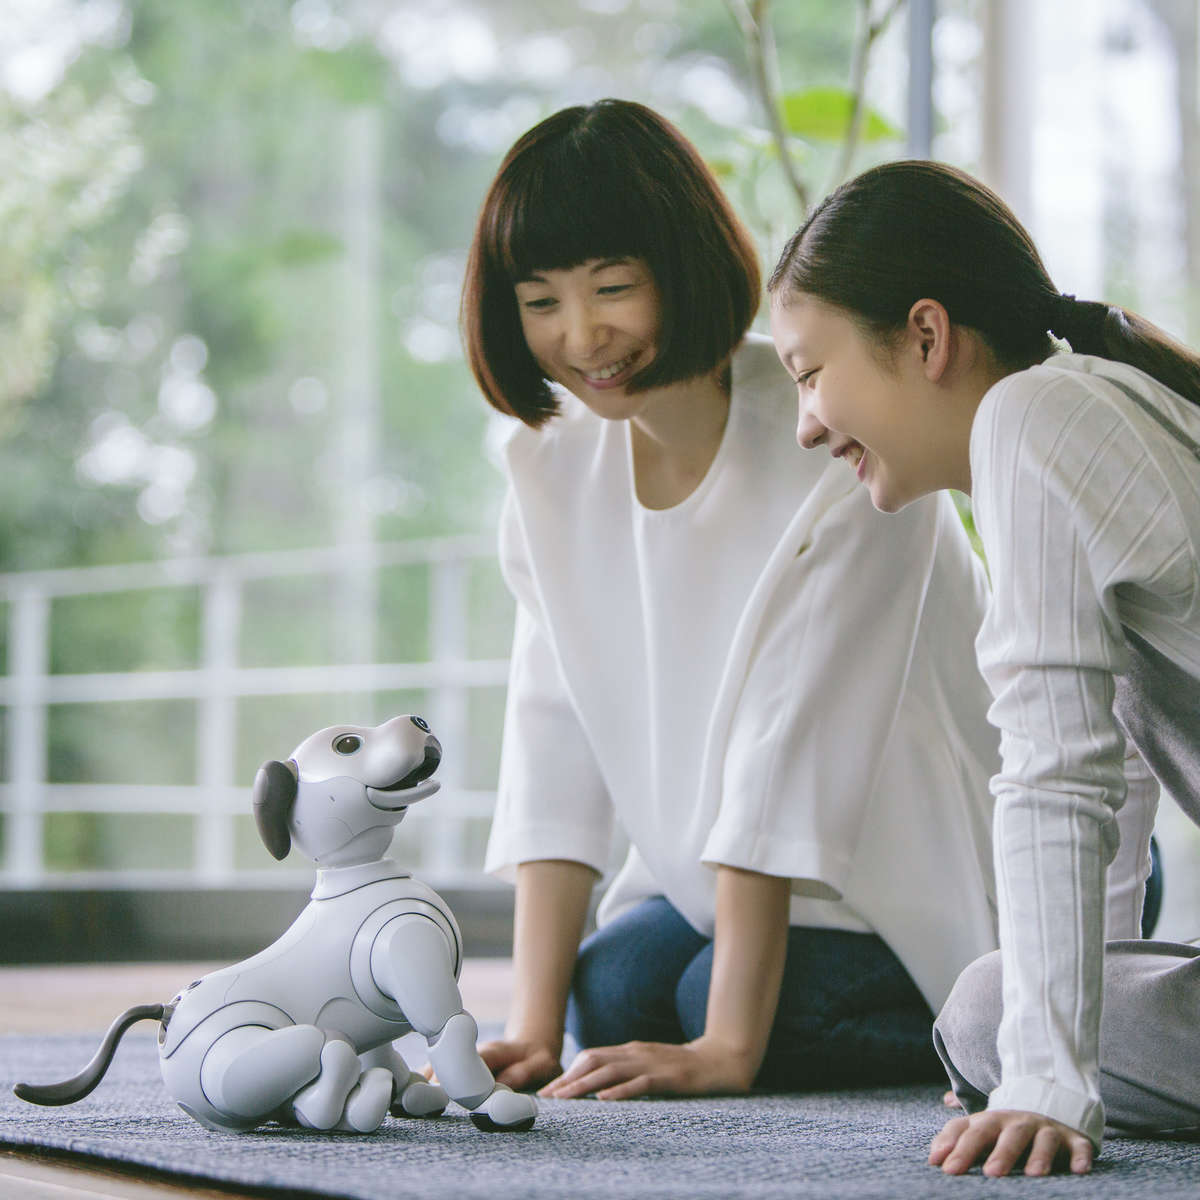 Sony to launch robot dog Aibo in United States in September